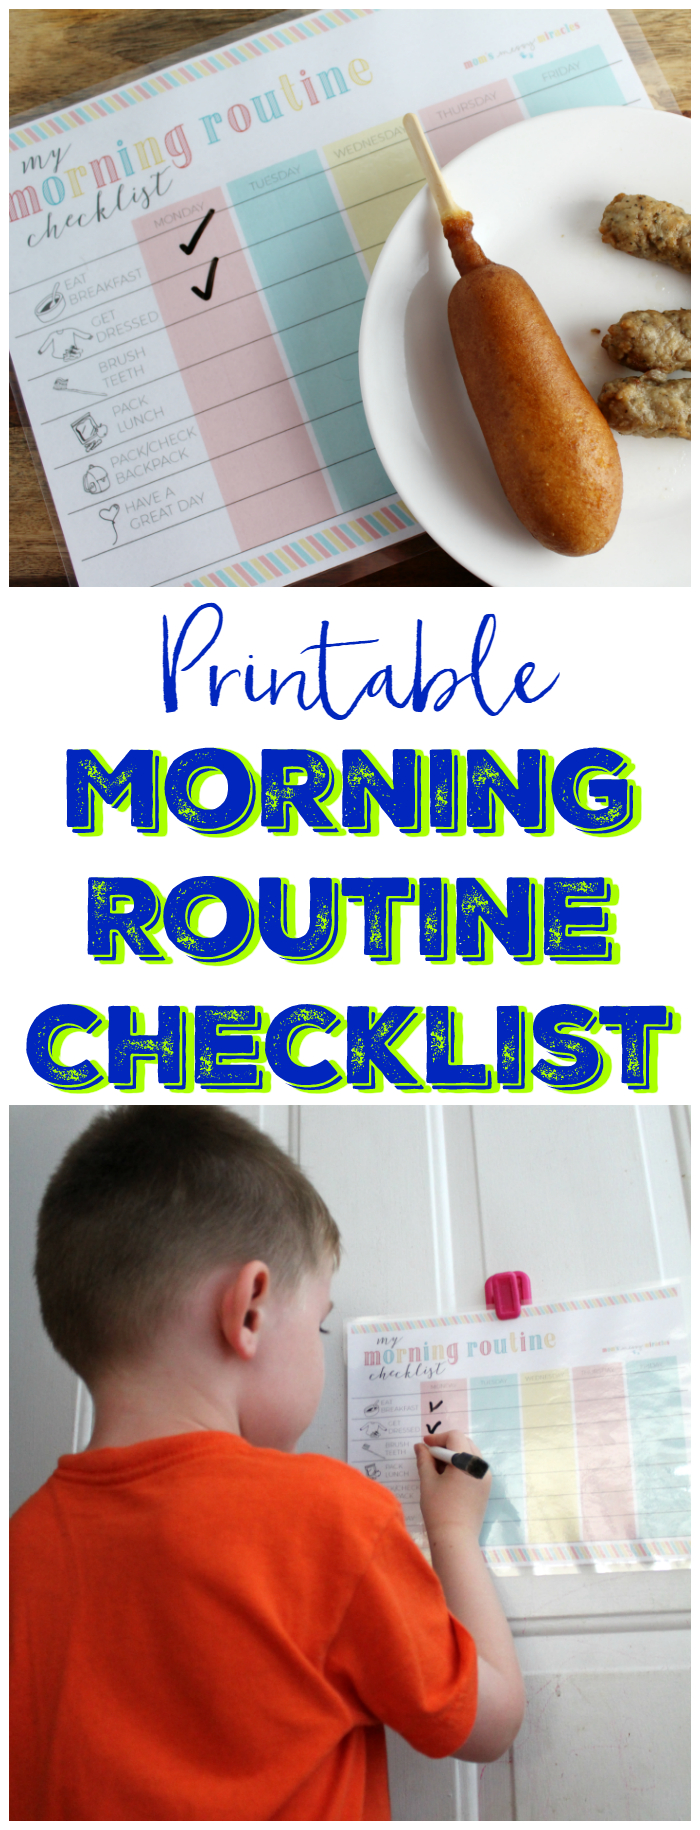 Printable Morning Routine Checklist for Kids - Use our free printable checklist to help mornings go smoother with the kids!